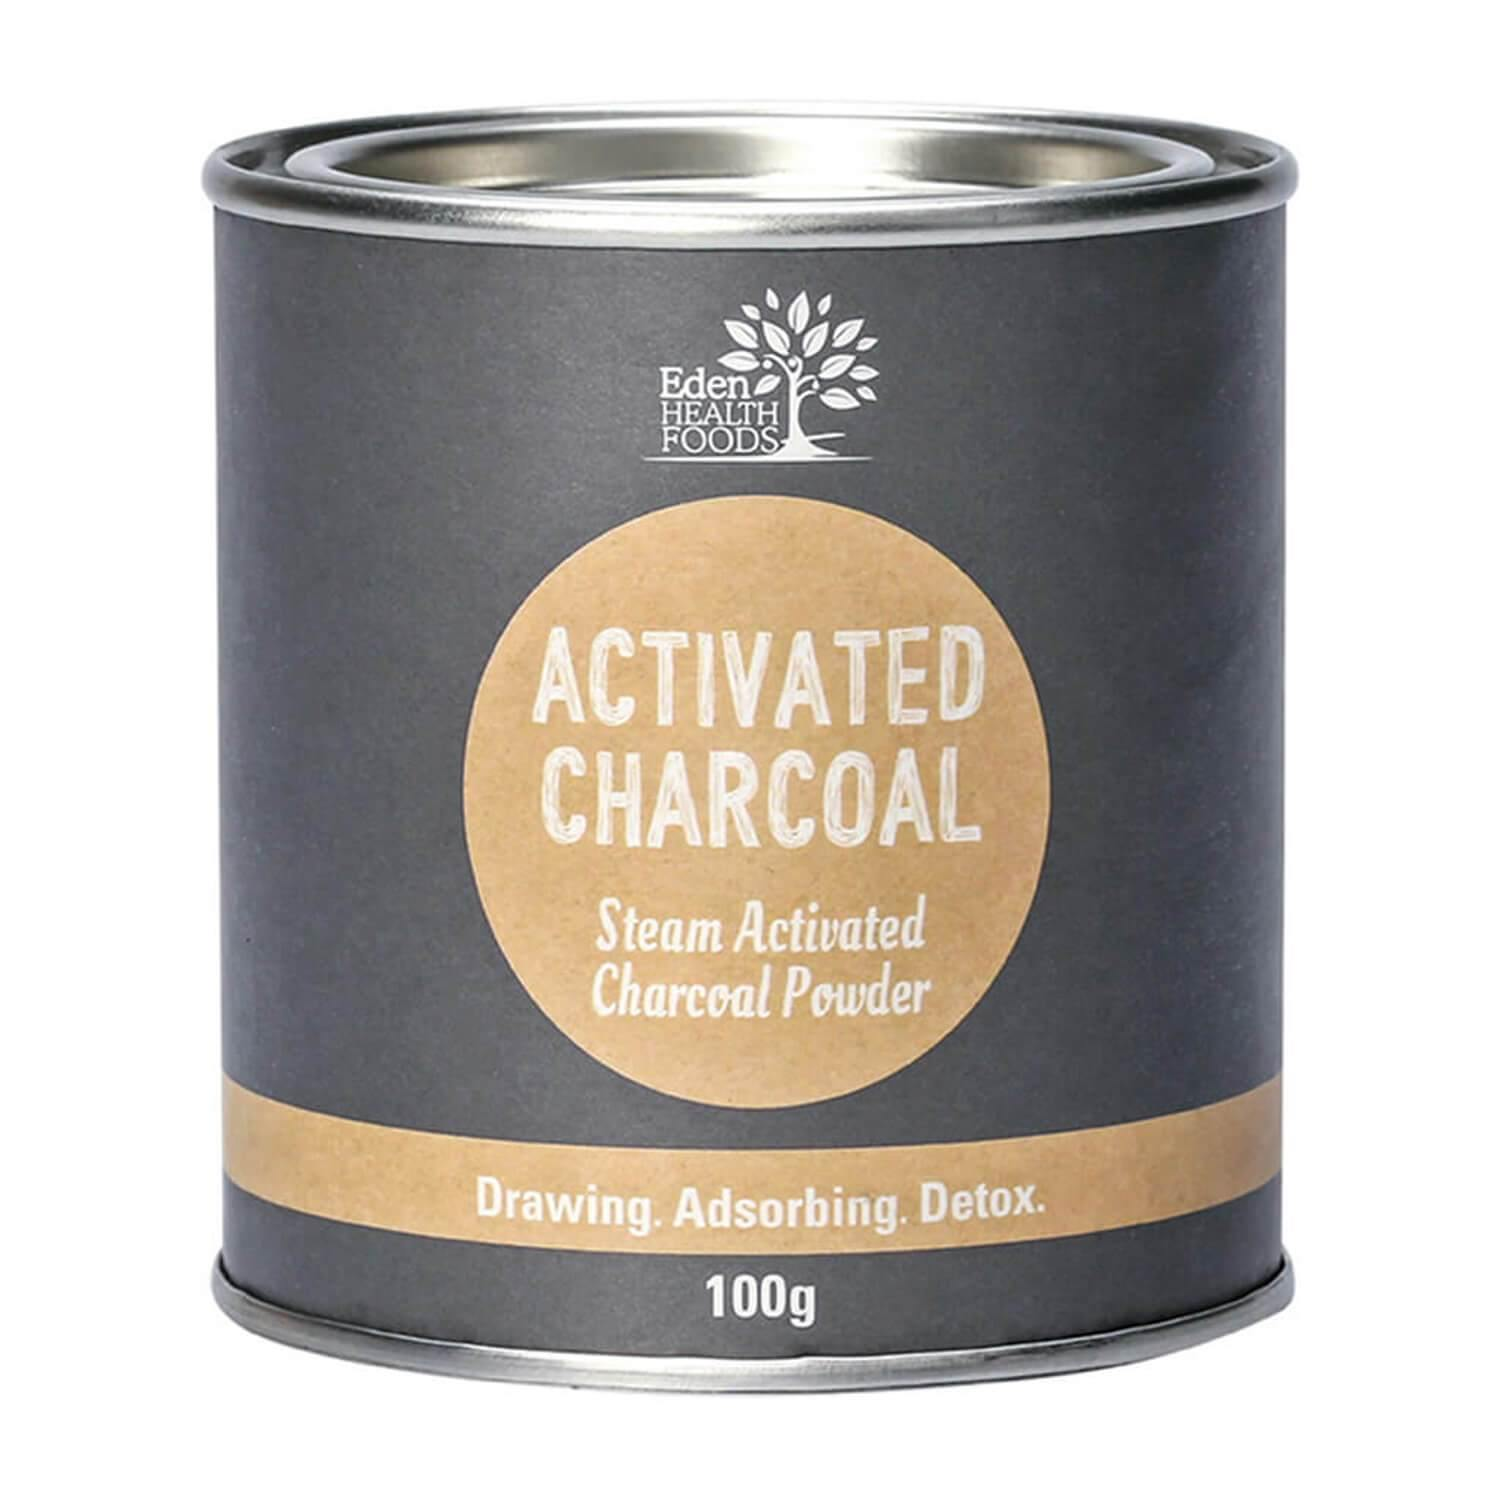 Eden Healthfoods Activated Charcoal Powder 100g